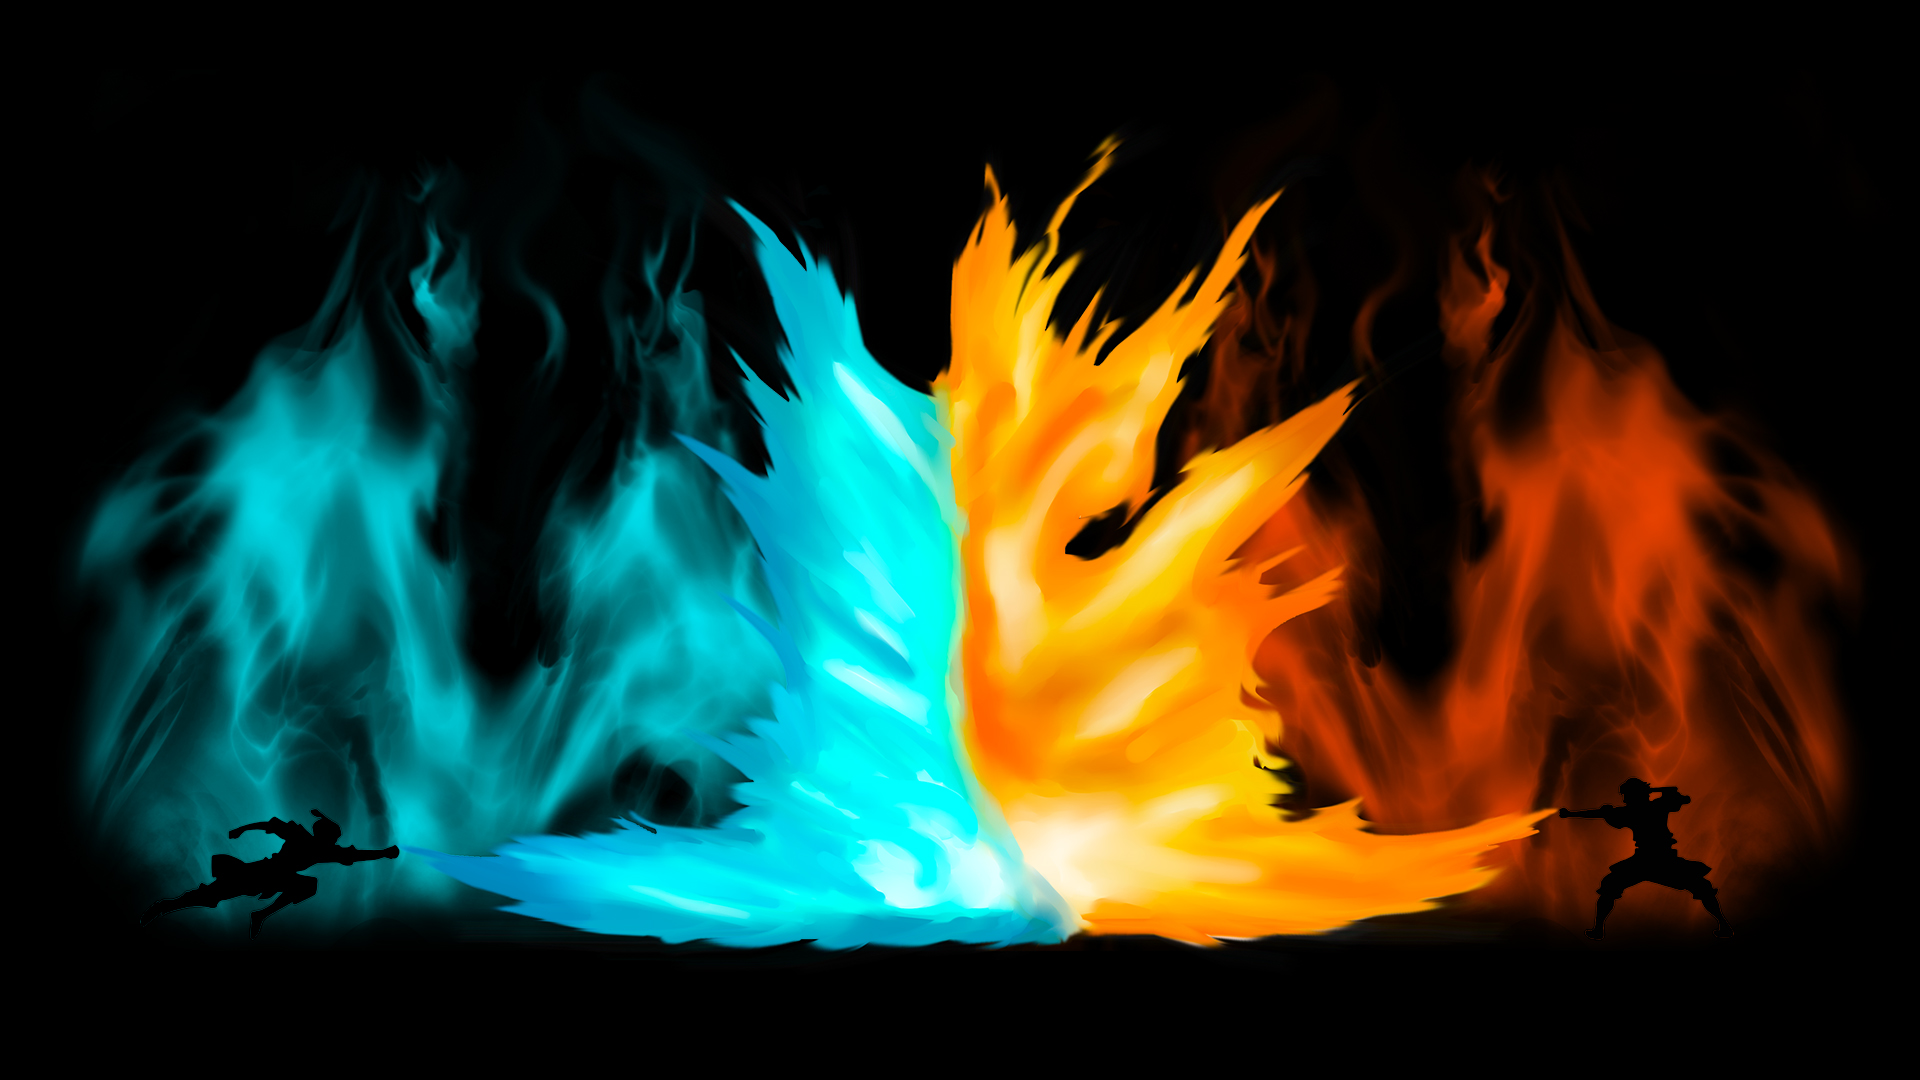 avatar - agni kai zuko vs azula - shirt/wallpaper